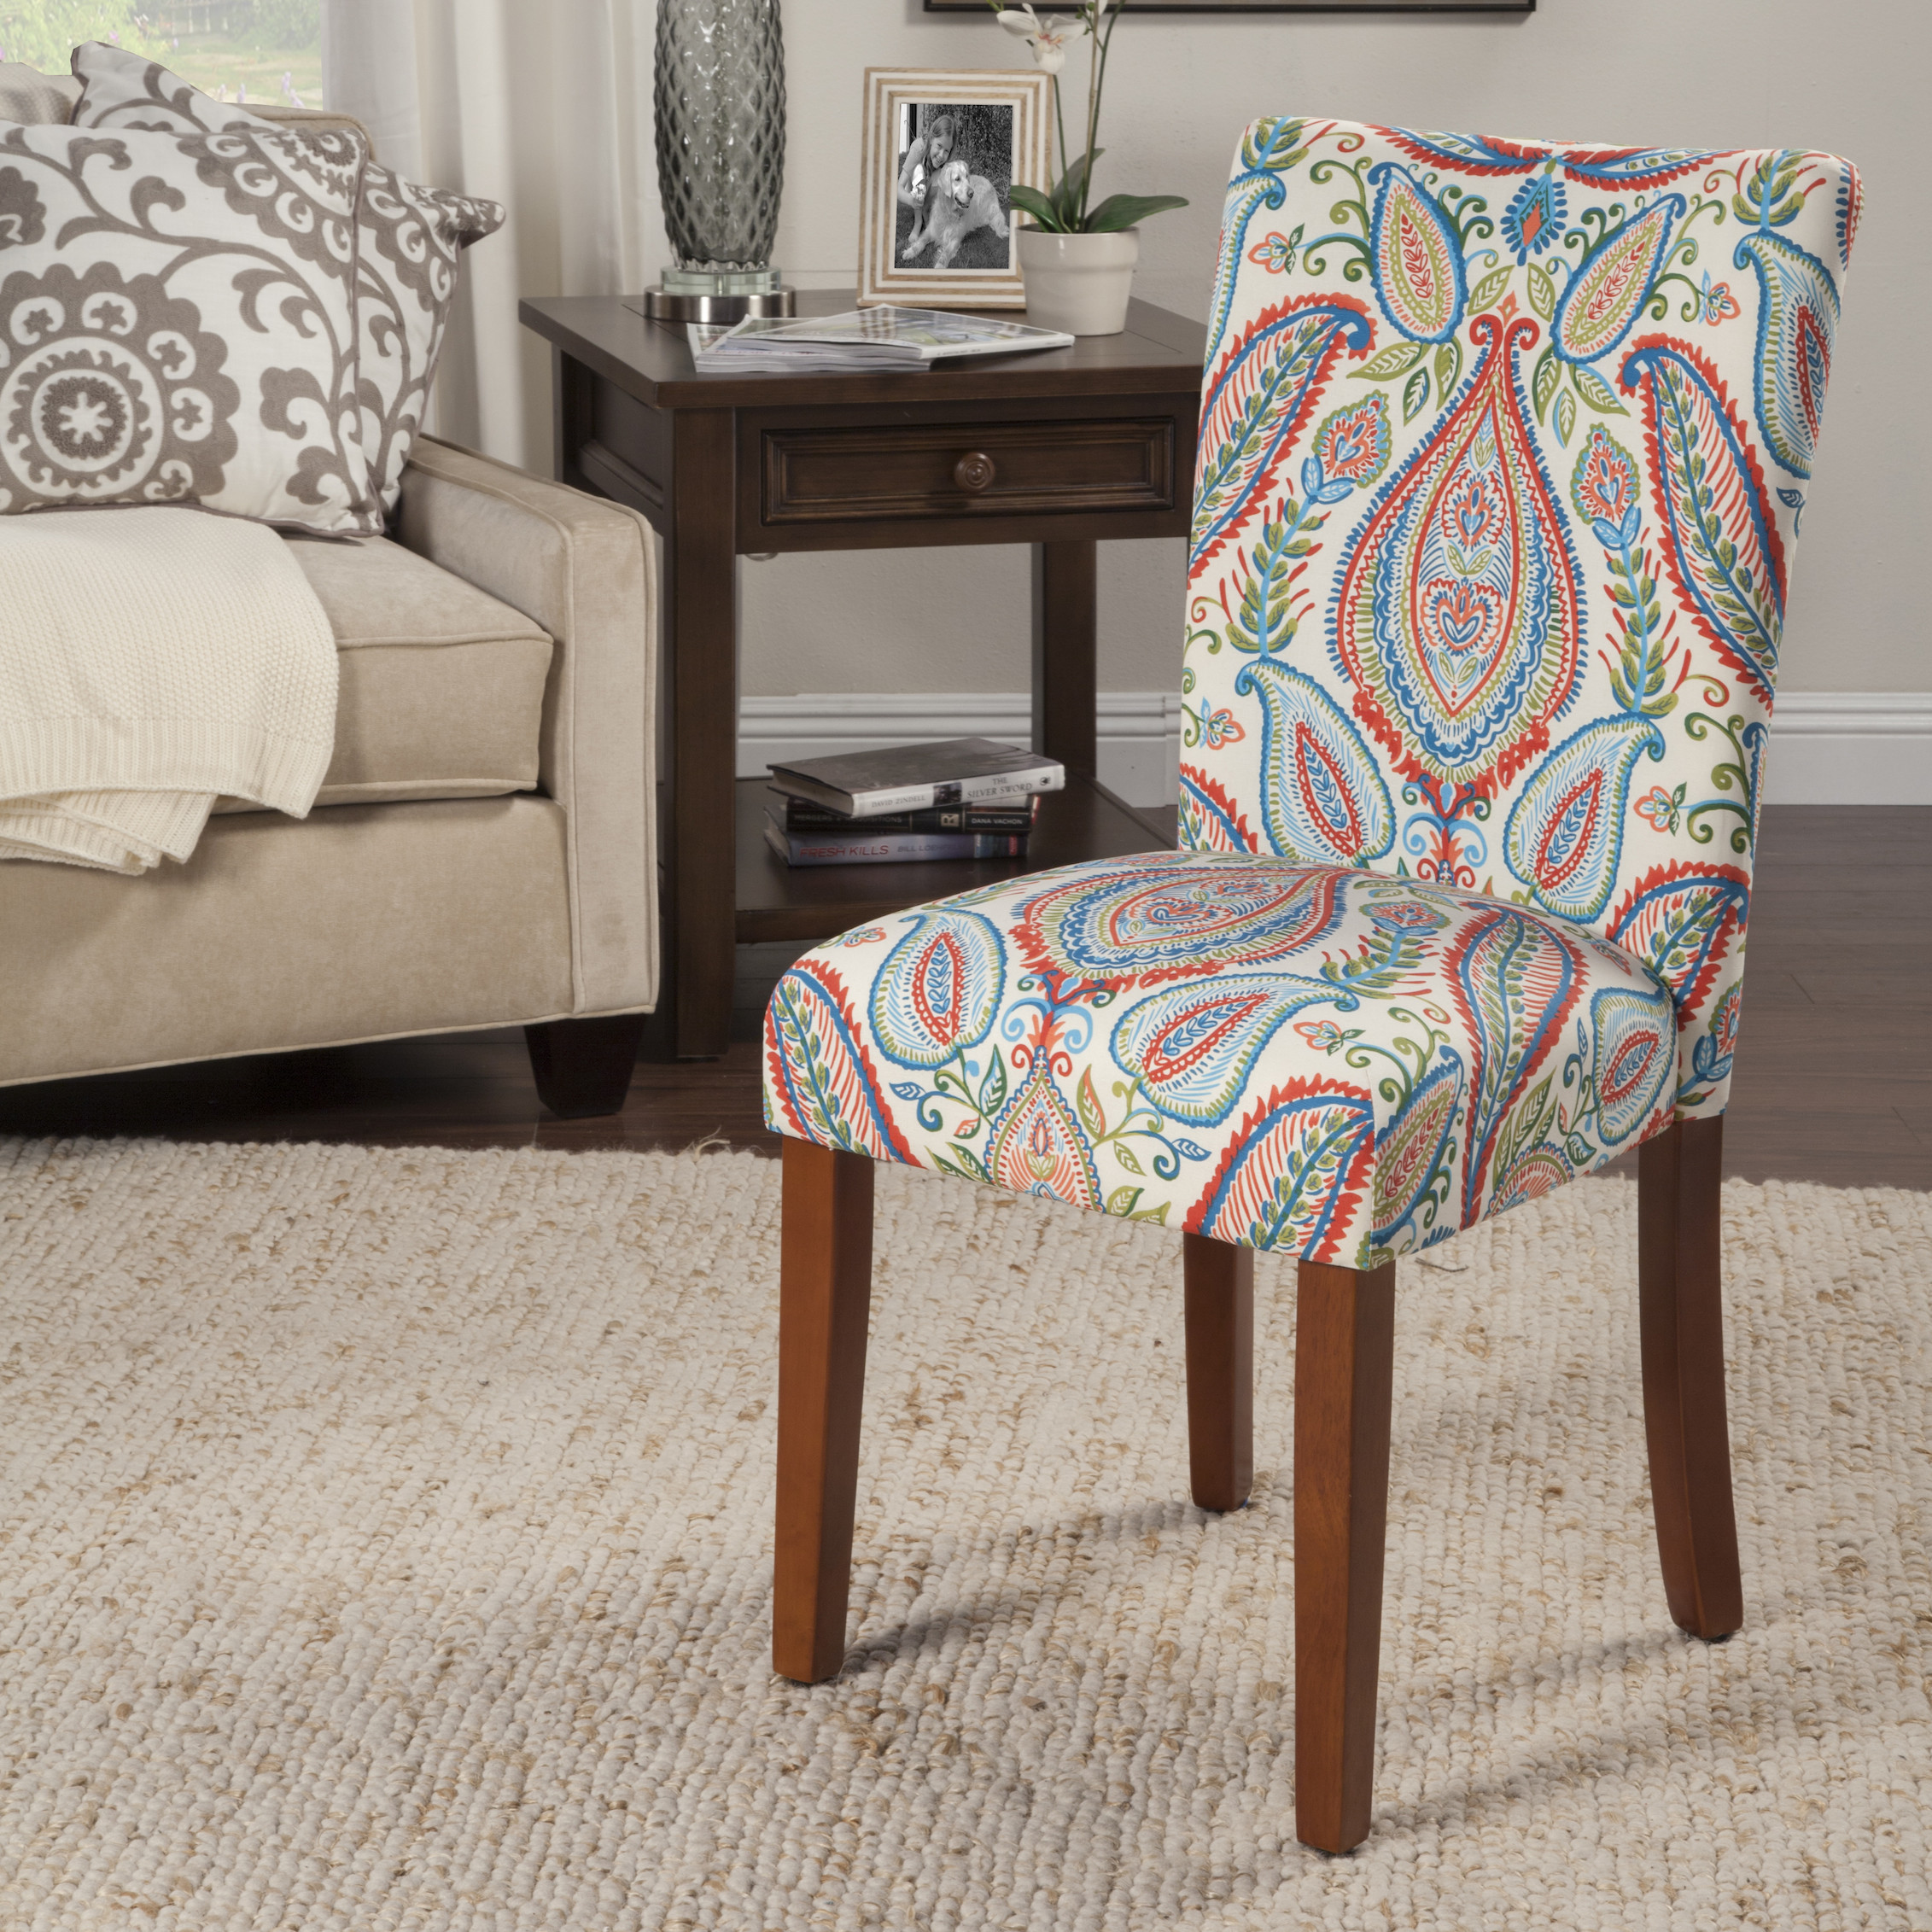 best paisley accent chair design ideas home furniture dining table with chairs white legs small room sets solid wood farmhouse turquoise umbrella stand lounge side glass round